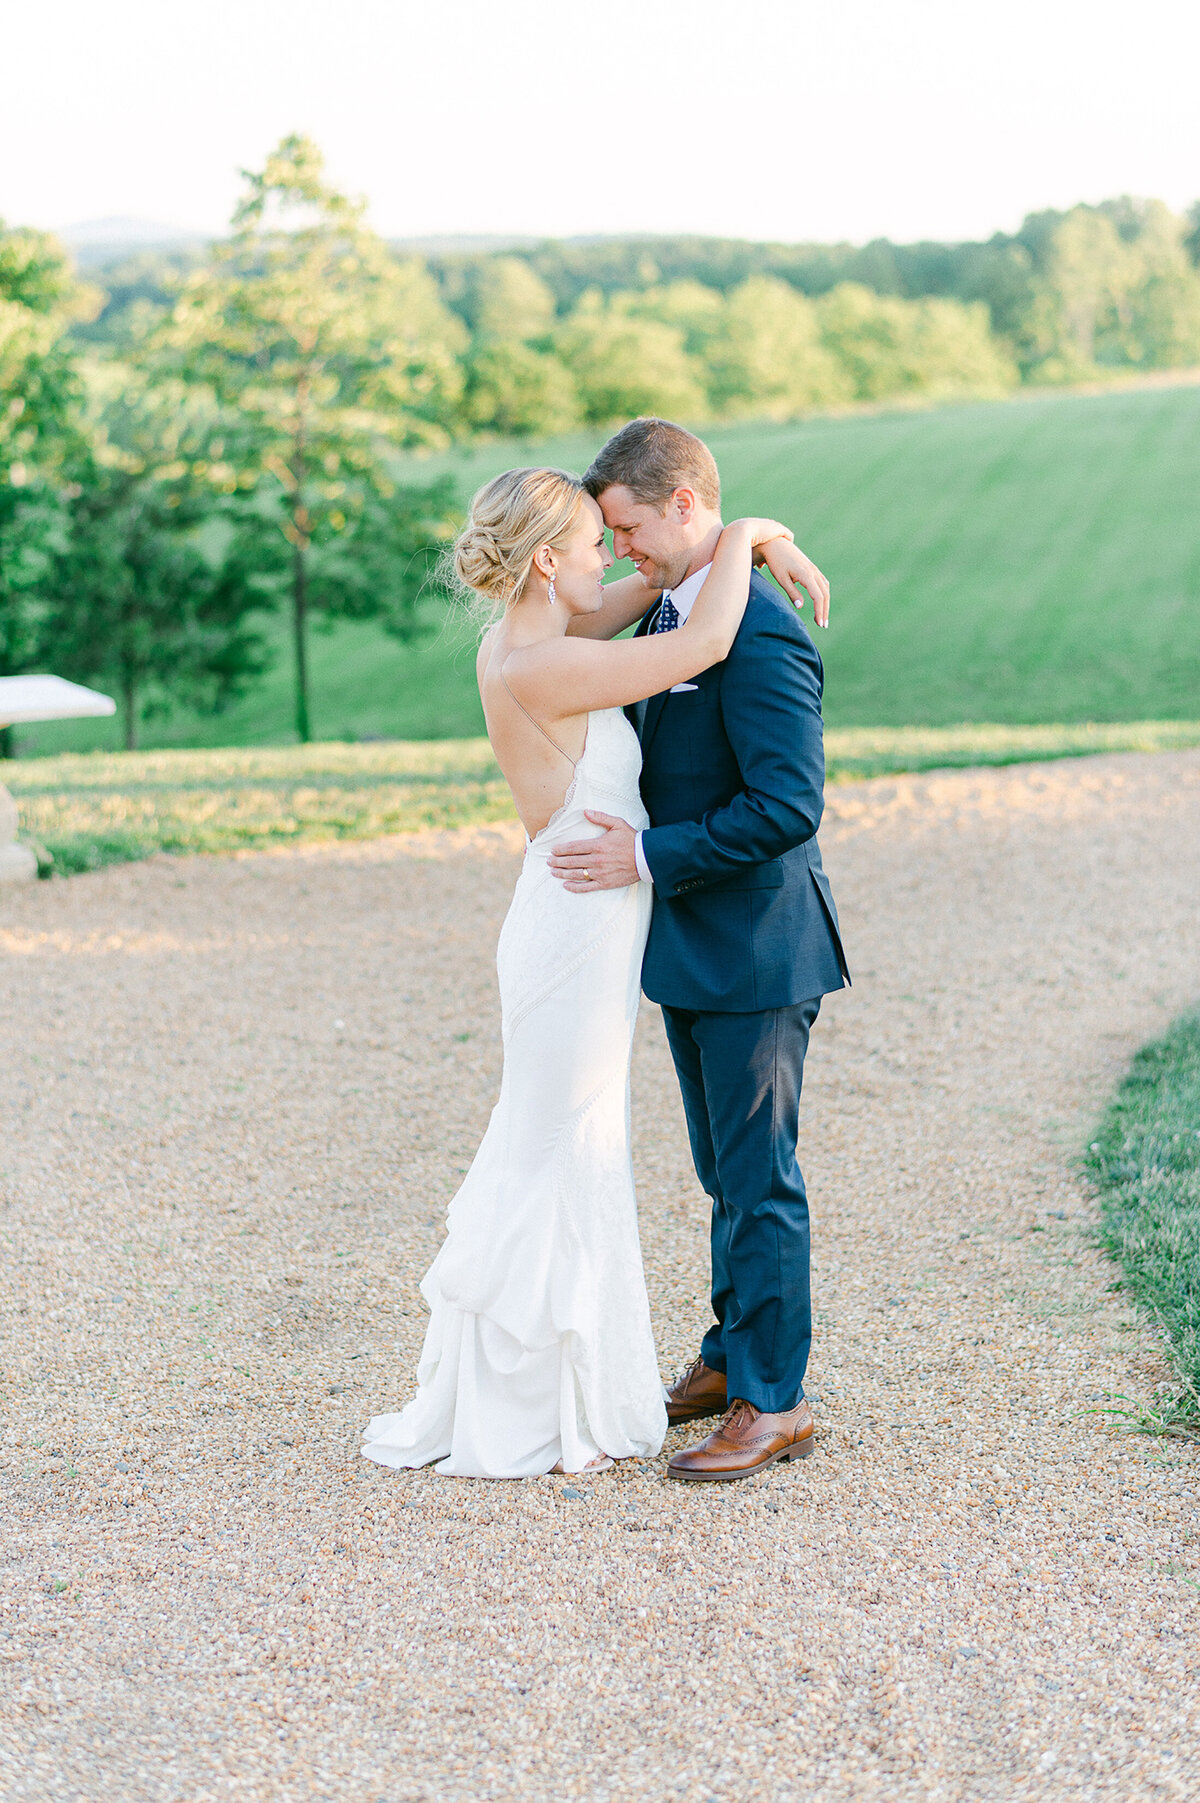 Jennifer Bosak Photography - DC Area Wedding Photography - DC, Virginia, Maryland - Kaitlyn + Jordan - Stone Tower Winery - 45